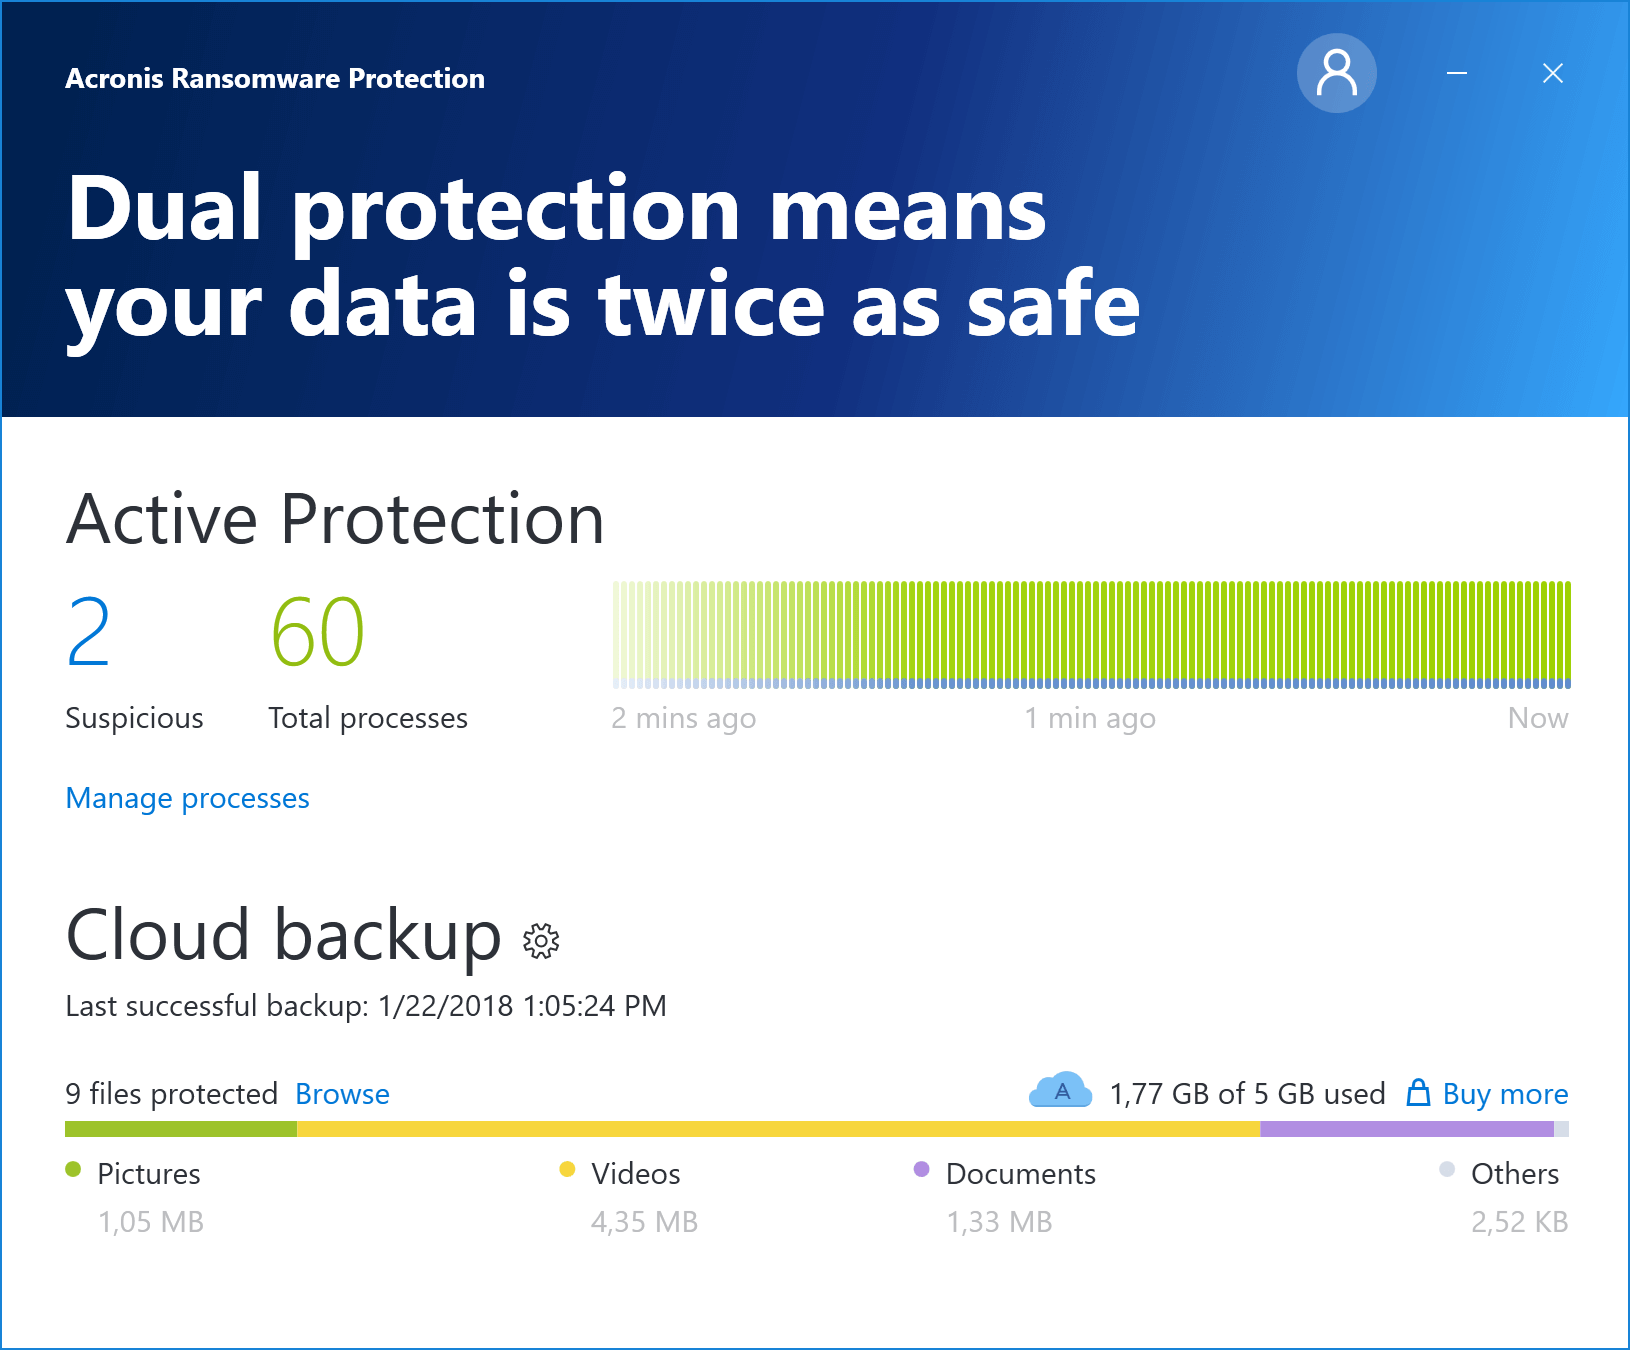 Acronis Ransomware Protection free